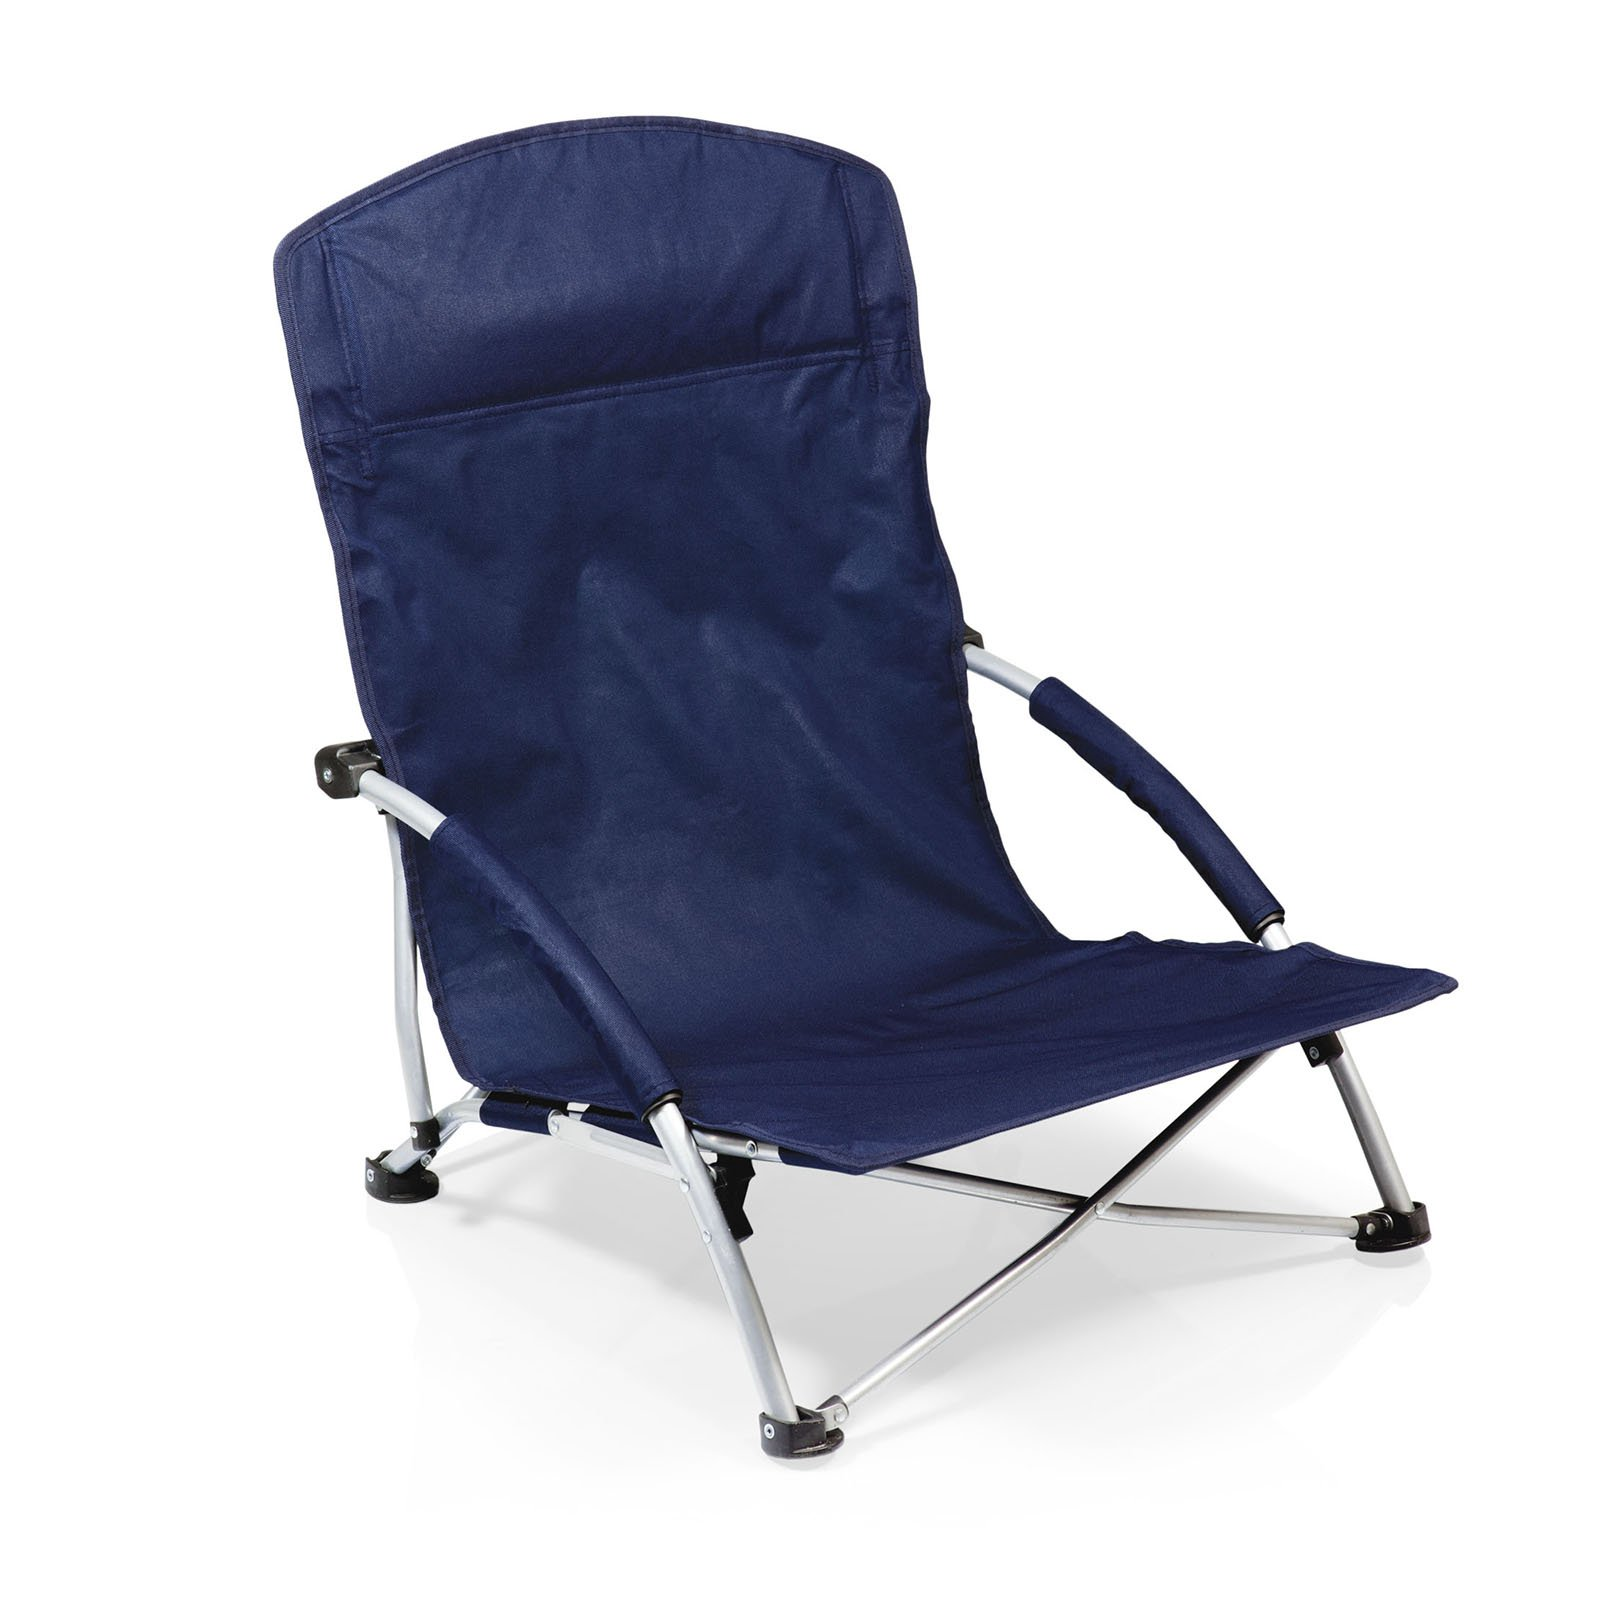 Picnic Time Tranquility Chair Walmart